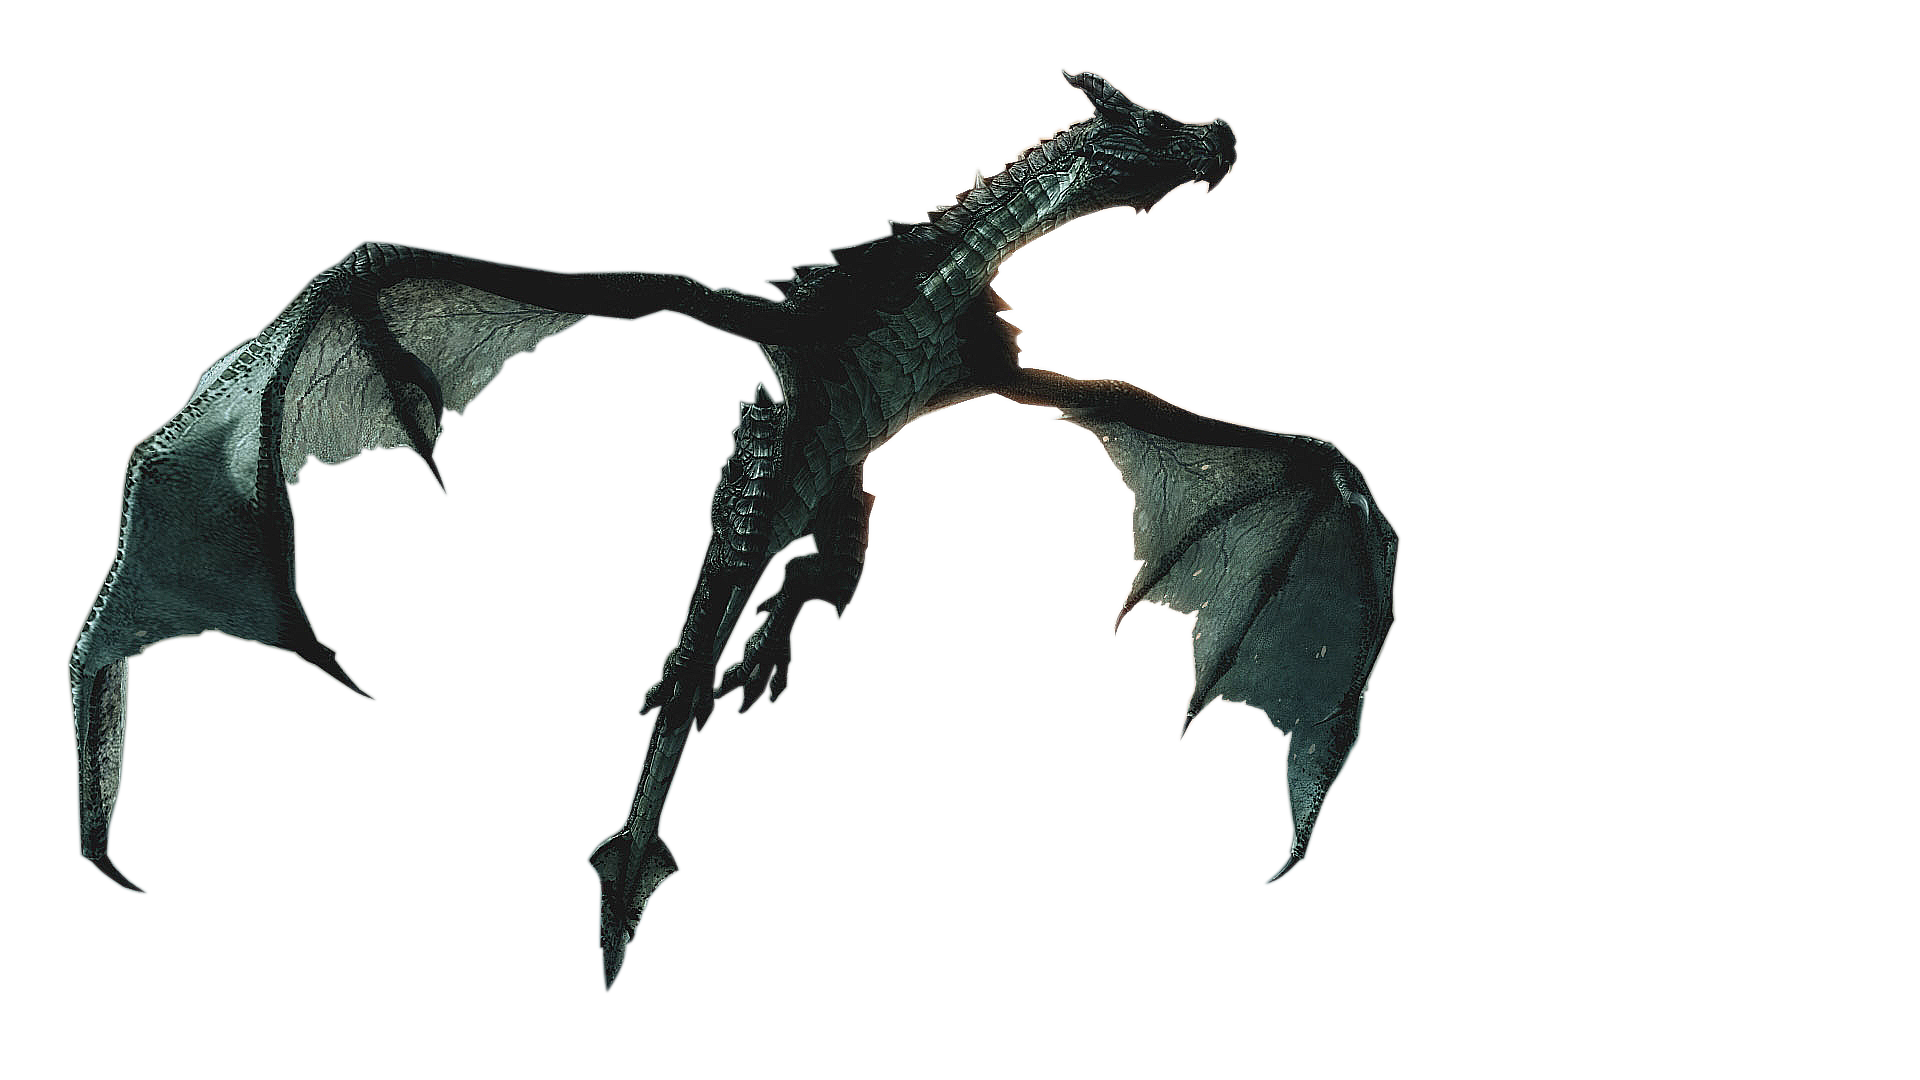 The Elder Scrolls V Skyrim Transparent PNG Image - The Elder Scrolls PNG